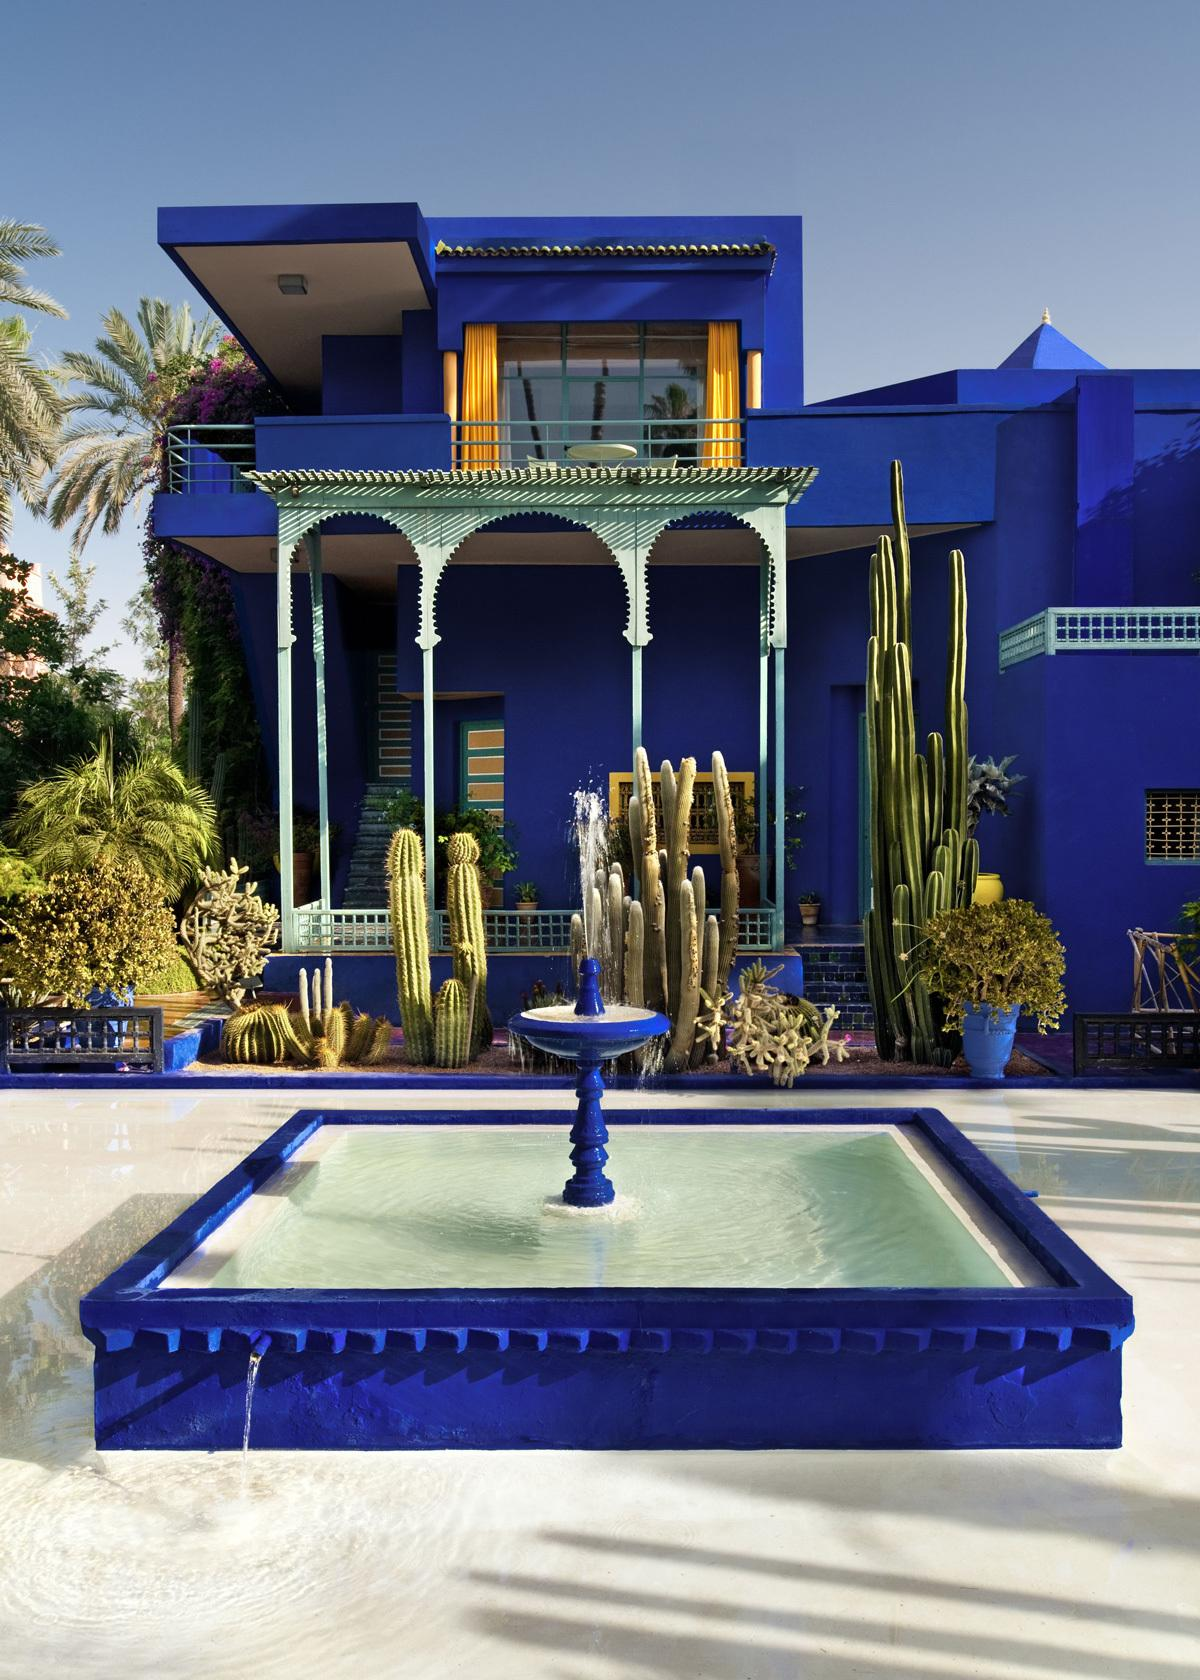 Yves saint laurent museum to open in marrakech read i d for Jardin yves saint laurent